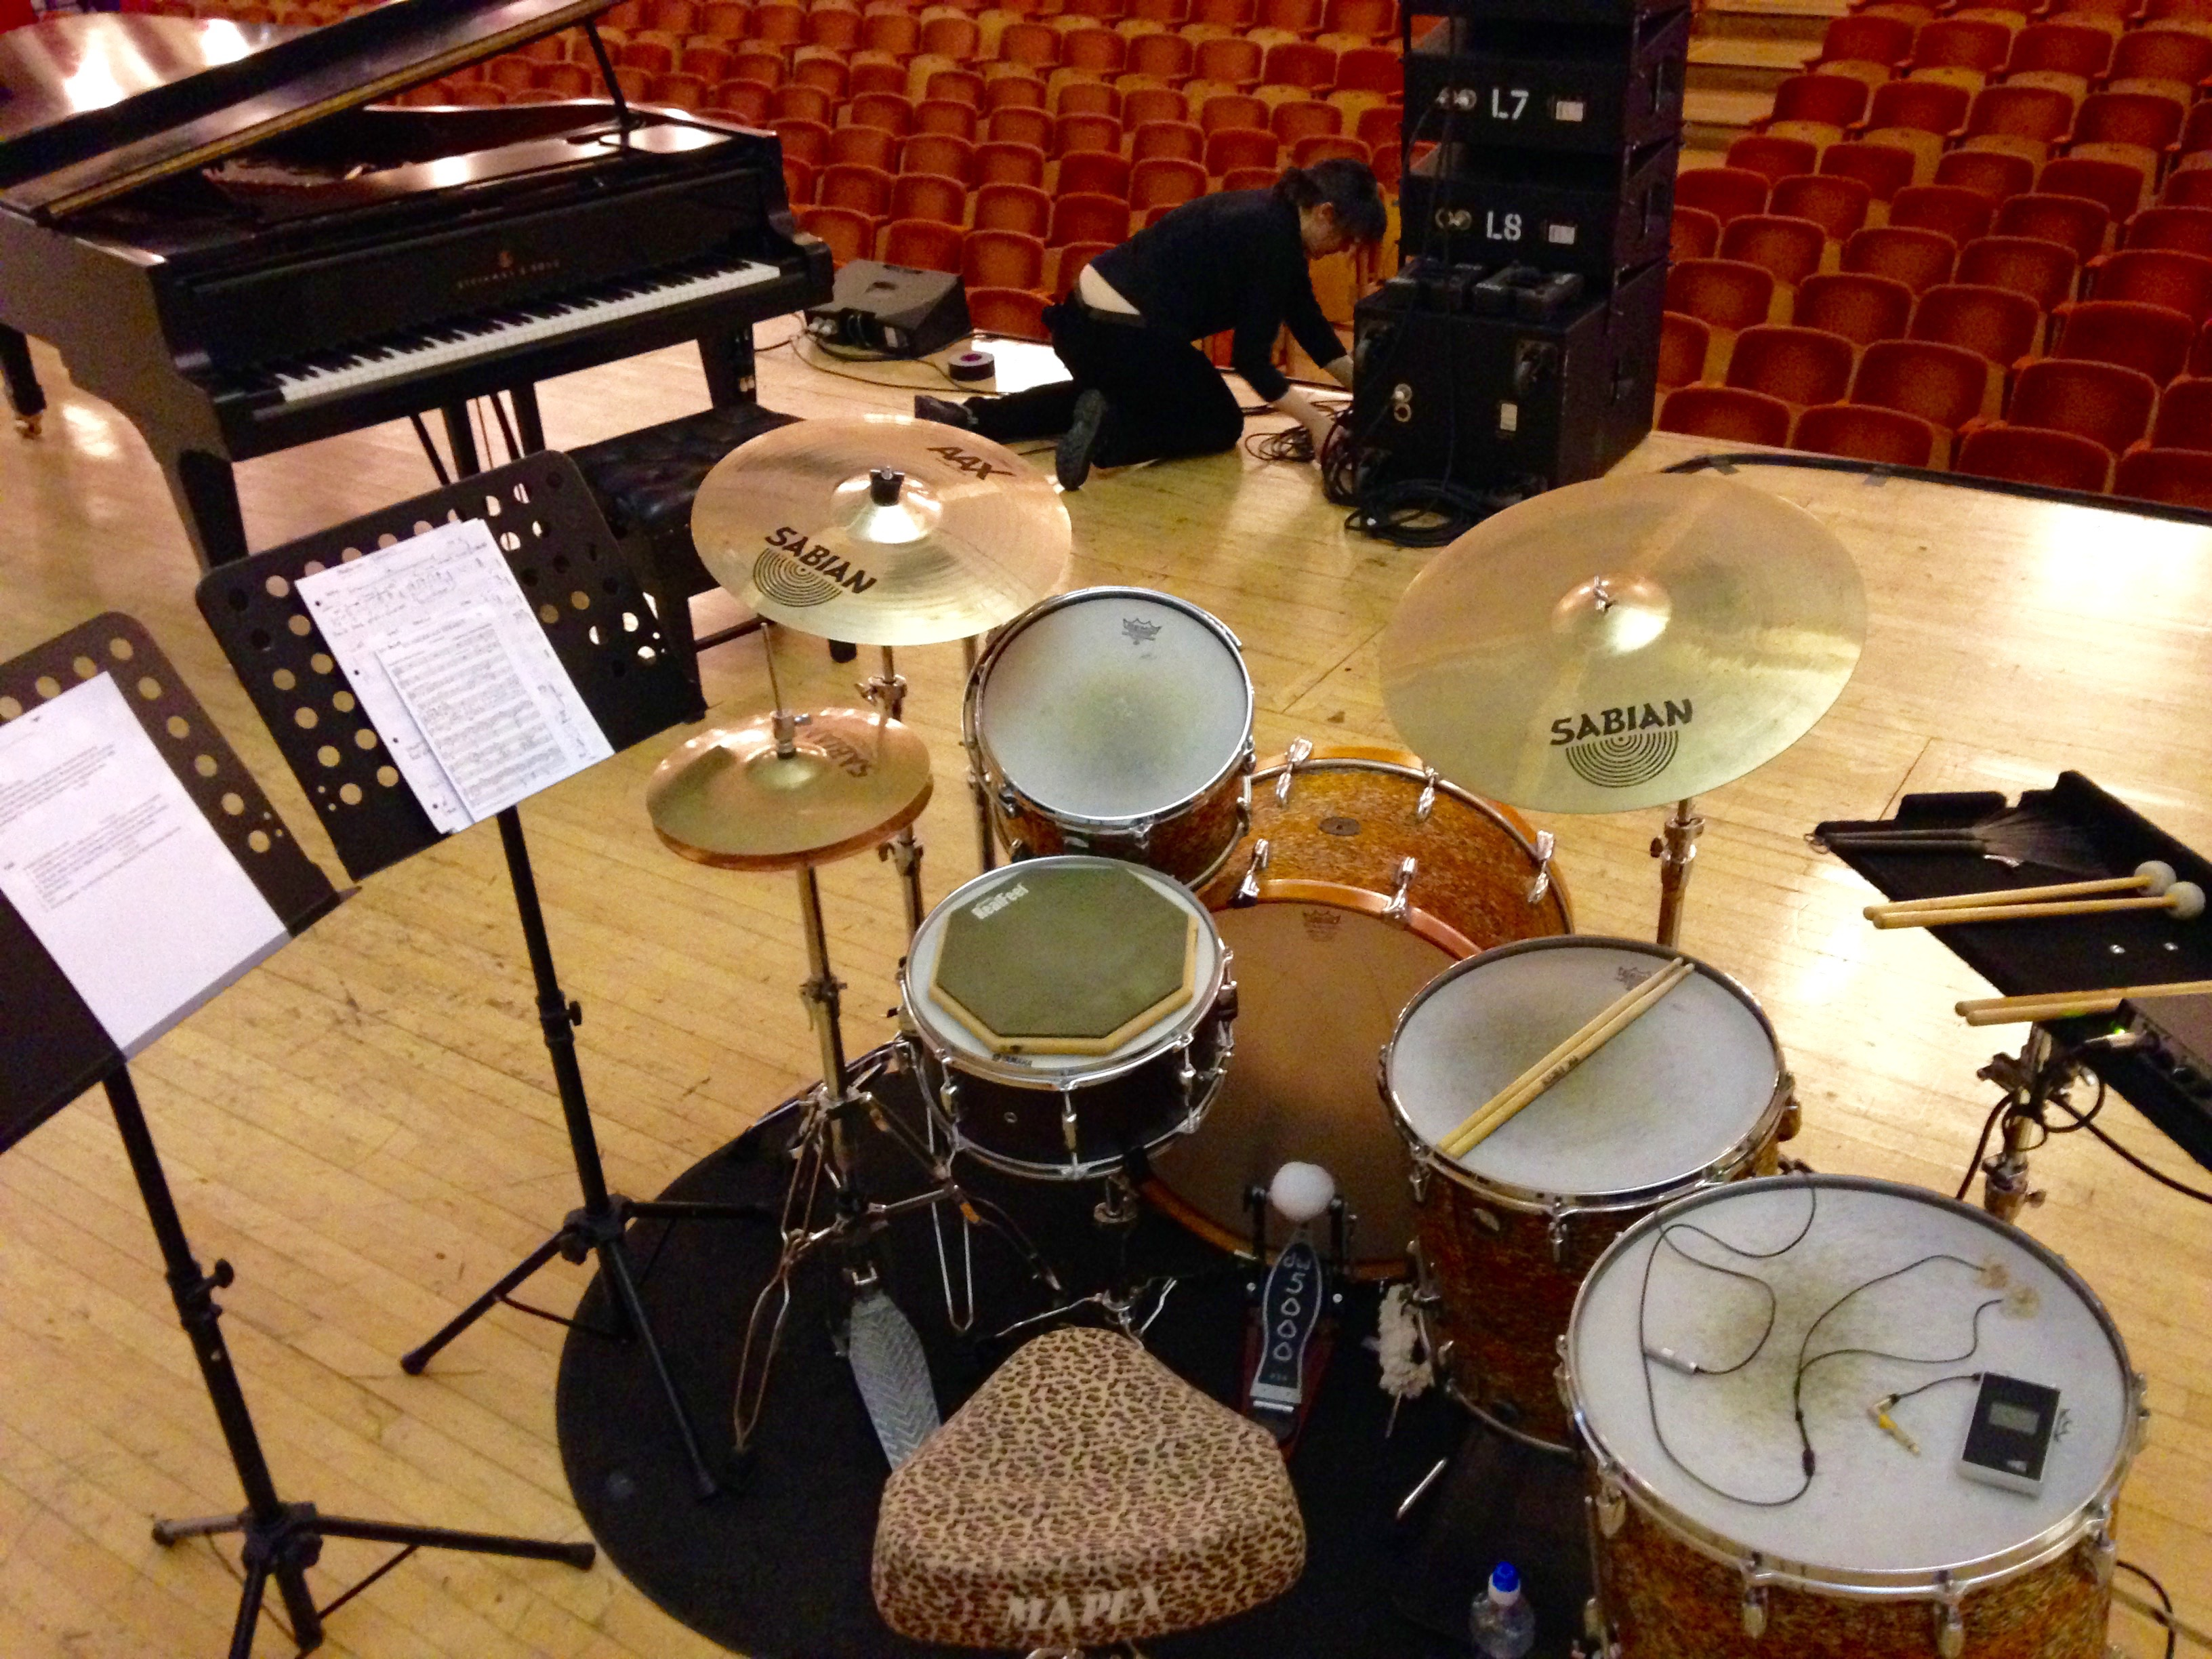 Lee Allatson's drum kit set up, player's side view. One Voice For Care, 2015